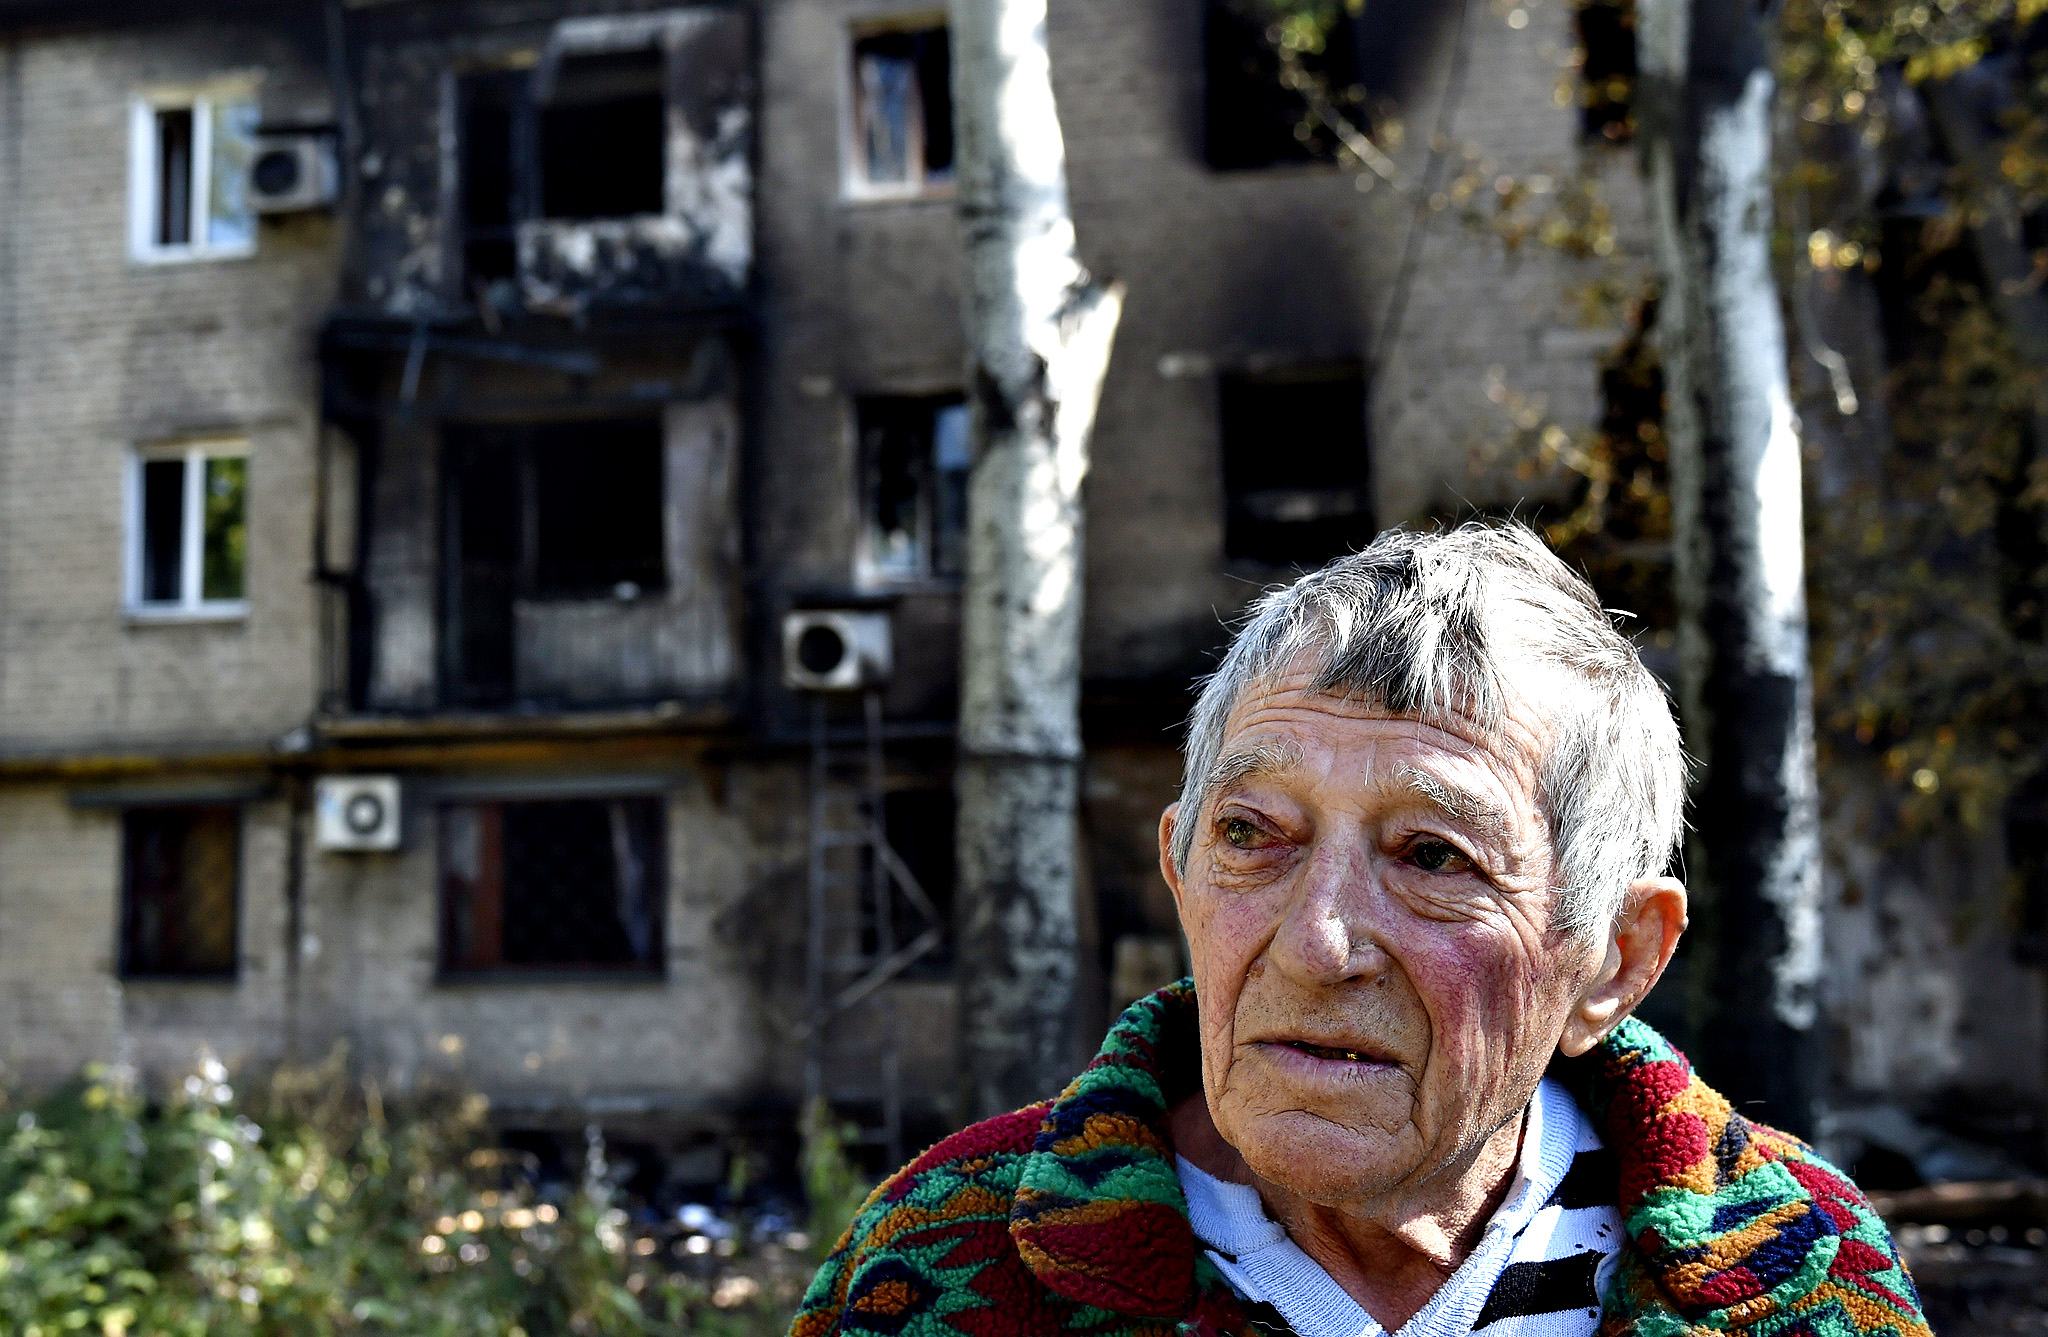 A man who left his burned flat stands in front of a building destroyed by shelling this morning in the Kievsky district near the international airport on September 17, 2014 in Donetsk, eastern Ukraine.  Two civilians were killed in fighting in the rebel-held eastern Ukrainian city of Donetsk, where fierce battles were raging near the airport on Wednesday, city hall said.